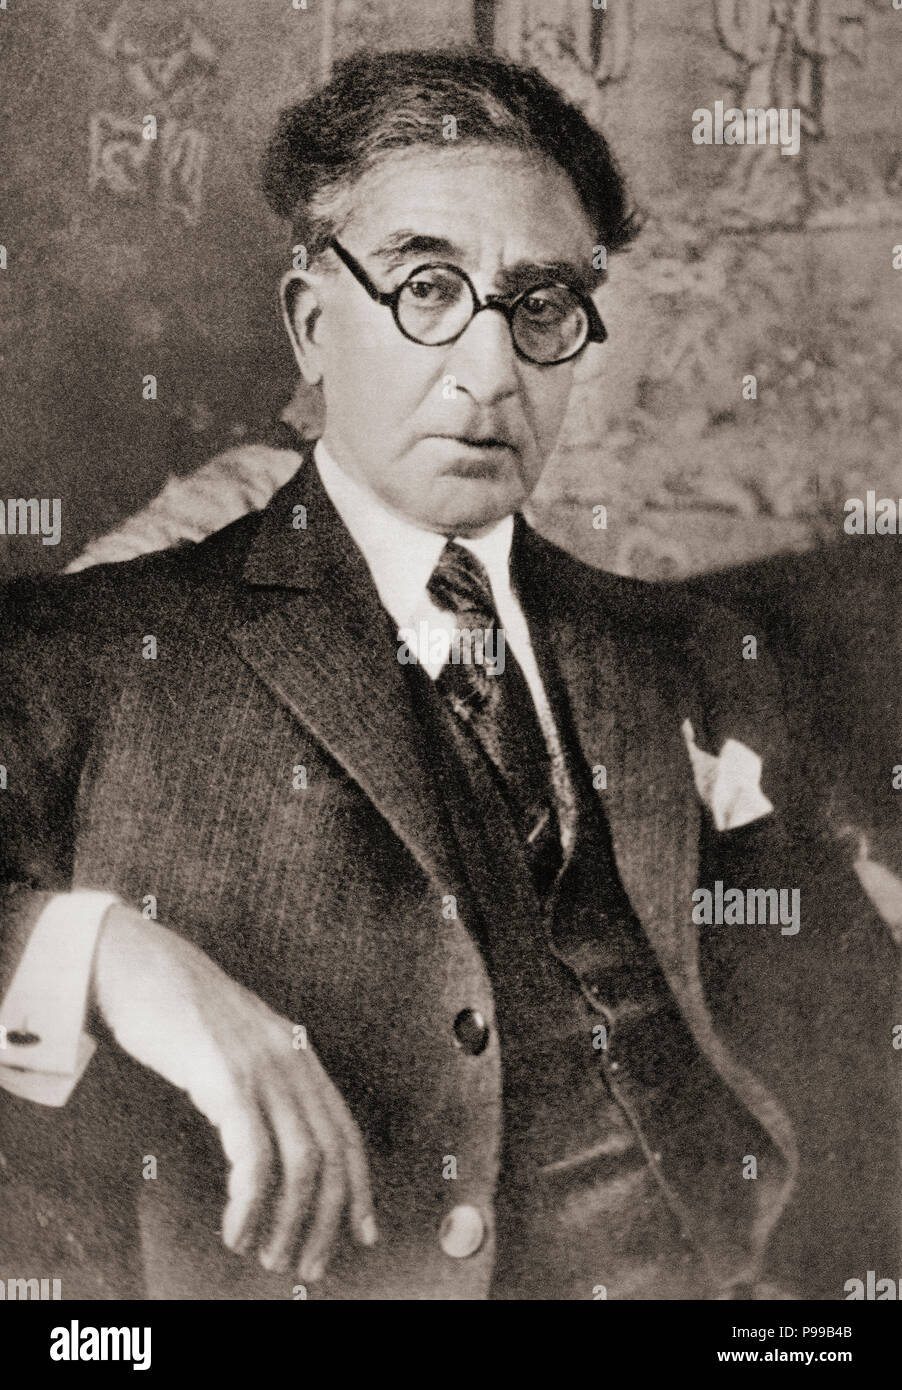 Constantine Peter Cavafy, aka Konstantin or Konstantinos Petrou Kavafis, 1863 –1933.   Egyptian Greek poet, journalist and civil servant.  After a contemporary print. - Stock Image